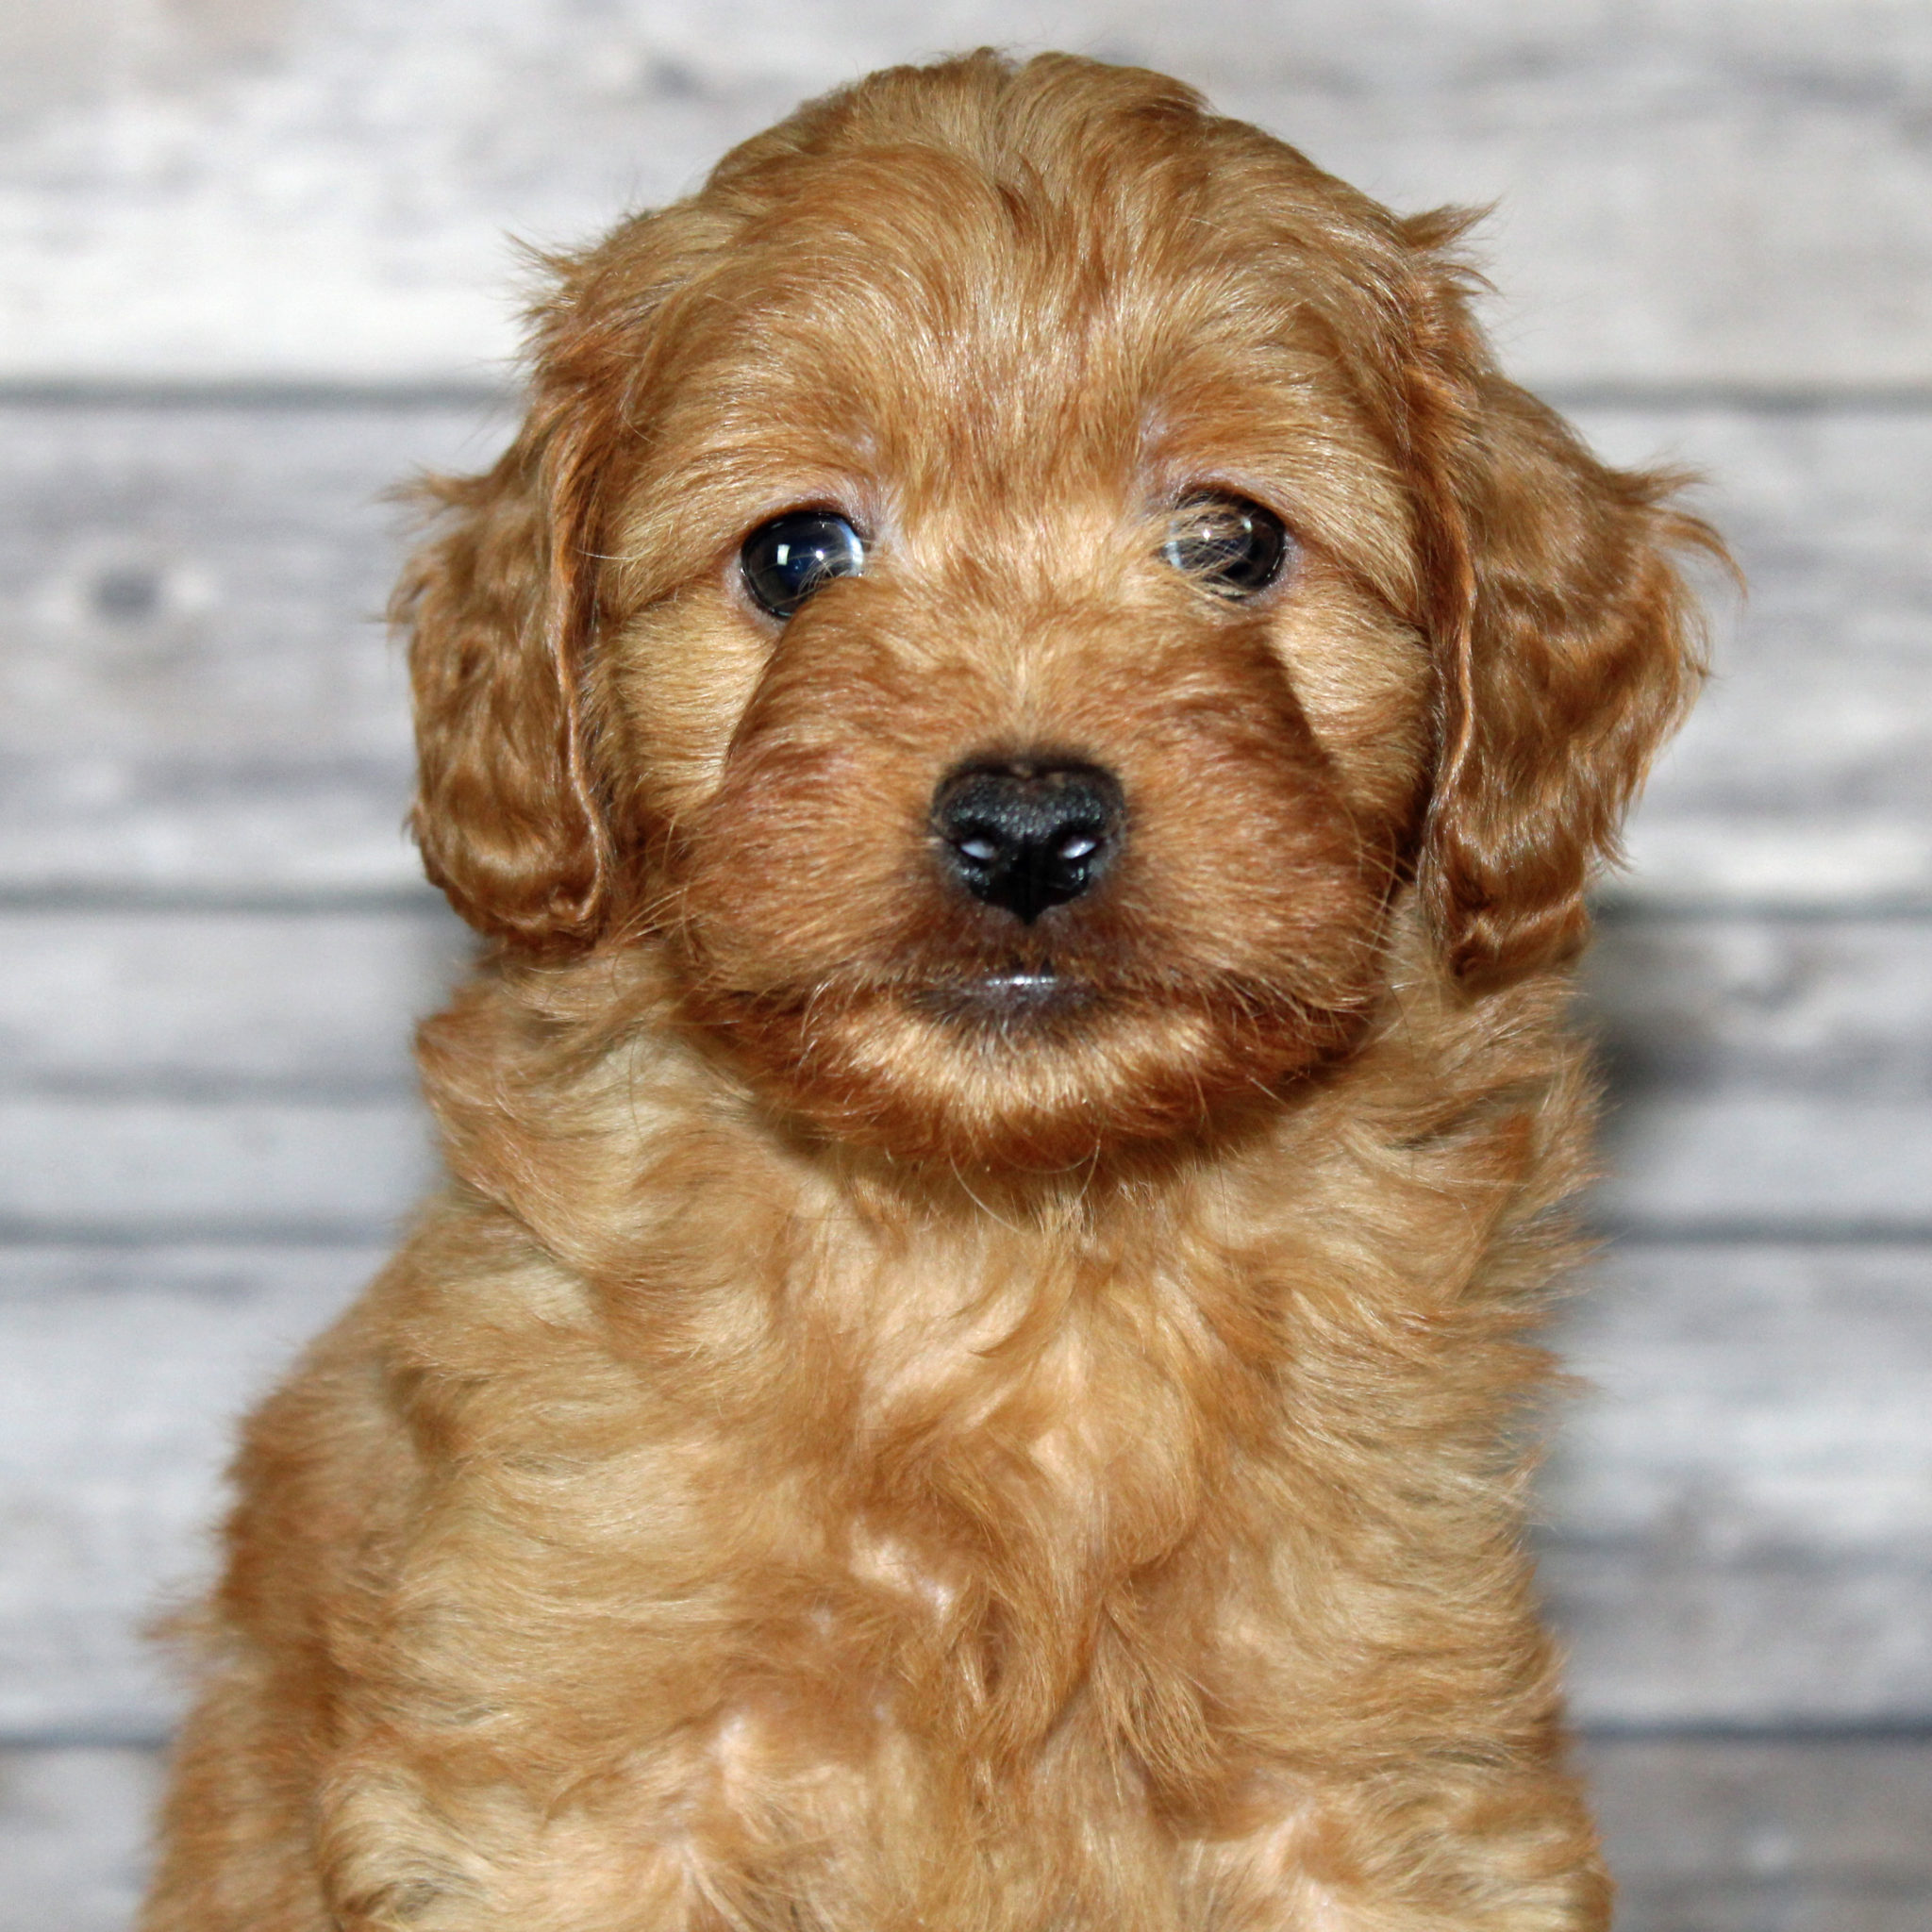 A Poodles 2 Doodles litter of Petite Irish Goldendoodles raised in Iowa